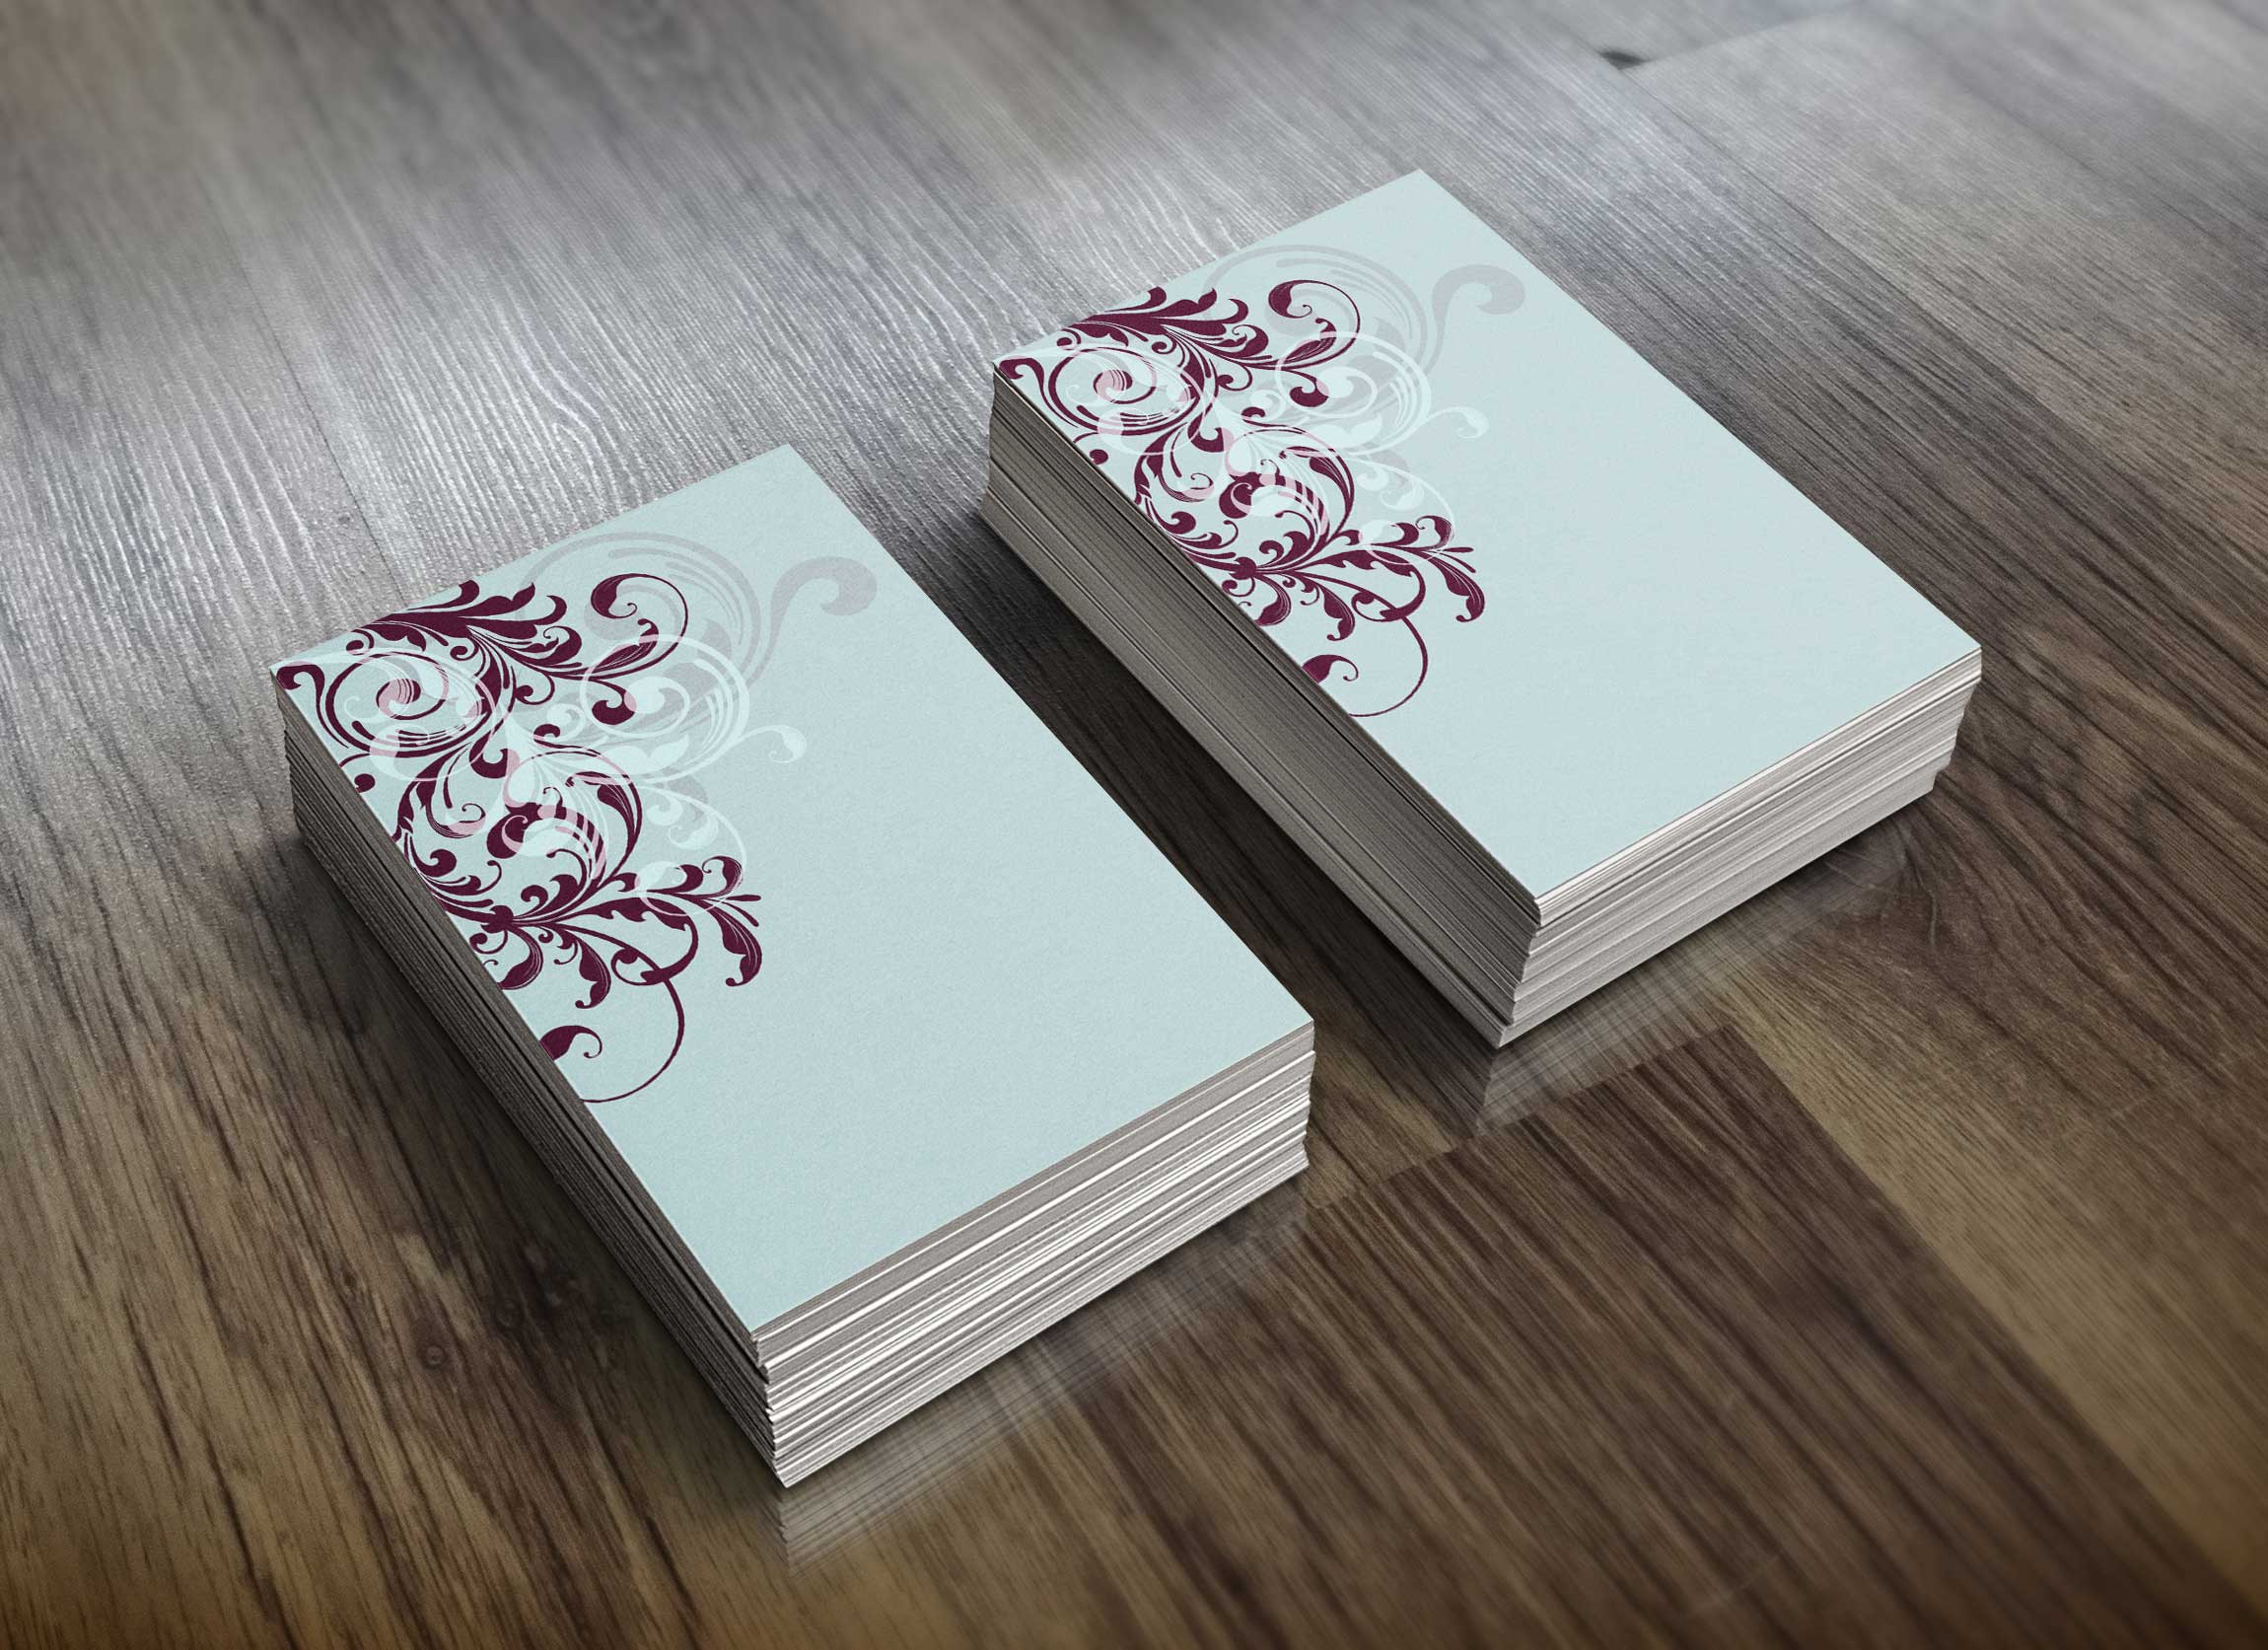 Business cards printed at ace print you need good quality printed business cards and thats why you should get them here at ace print business cards represent you and your company so you reheart Gallery